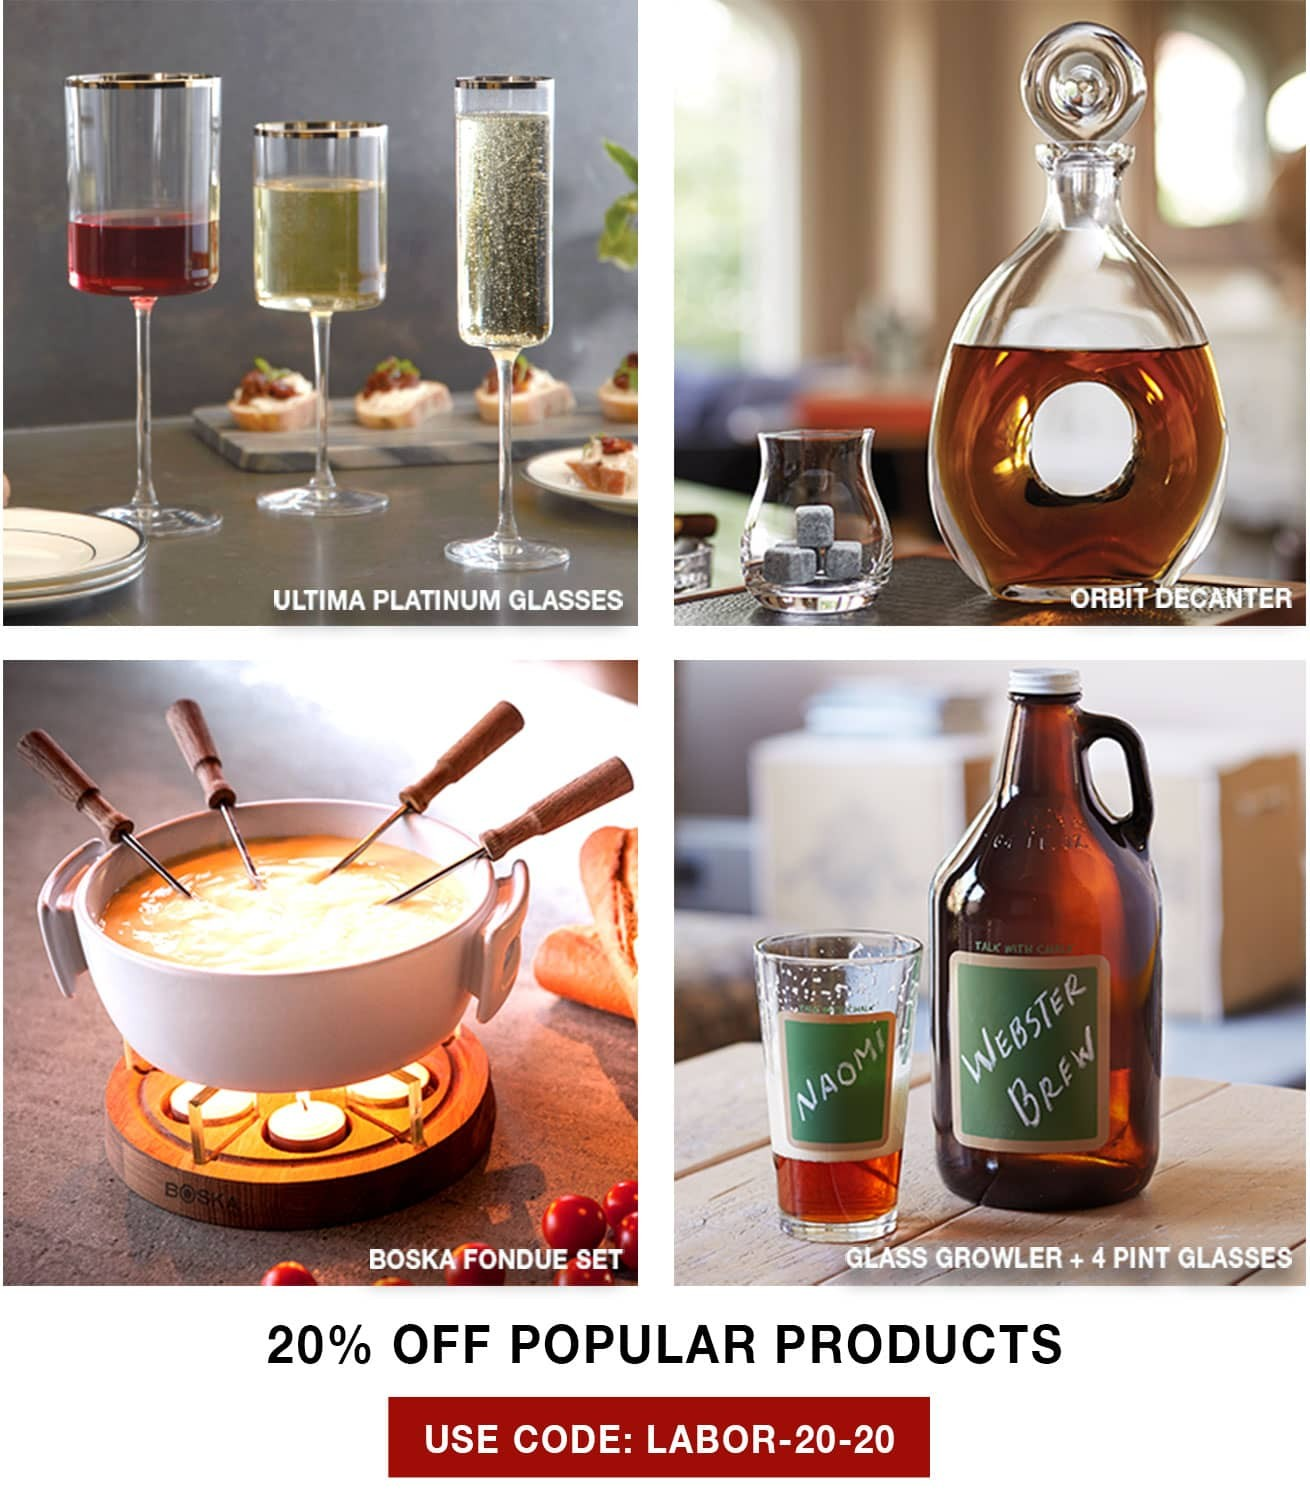 20% Off Select Products - Use Code LABOR-20-20